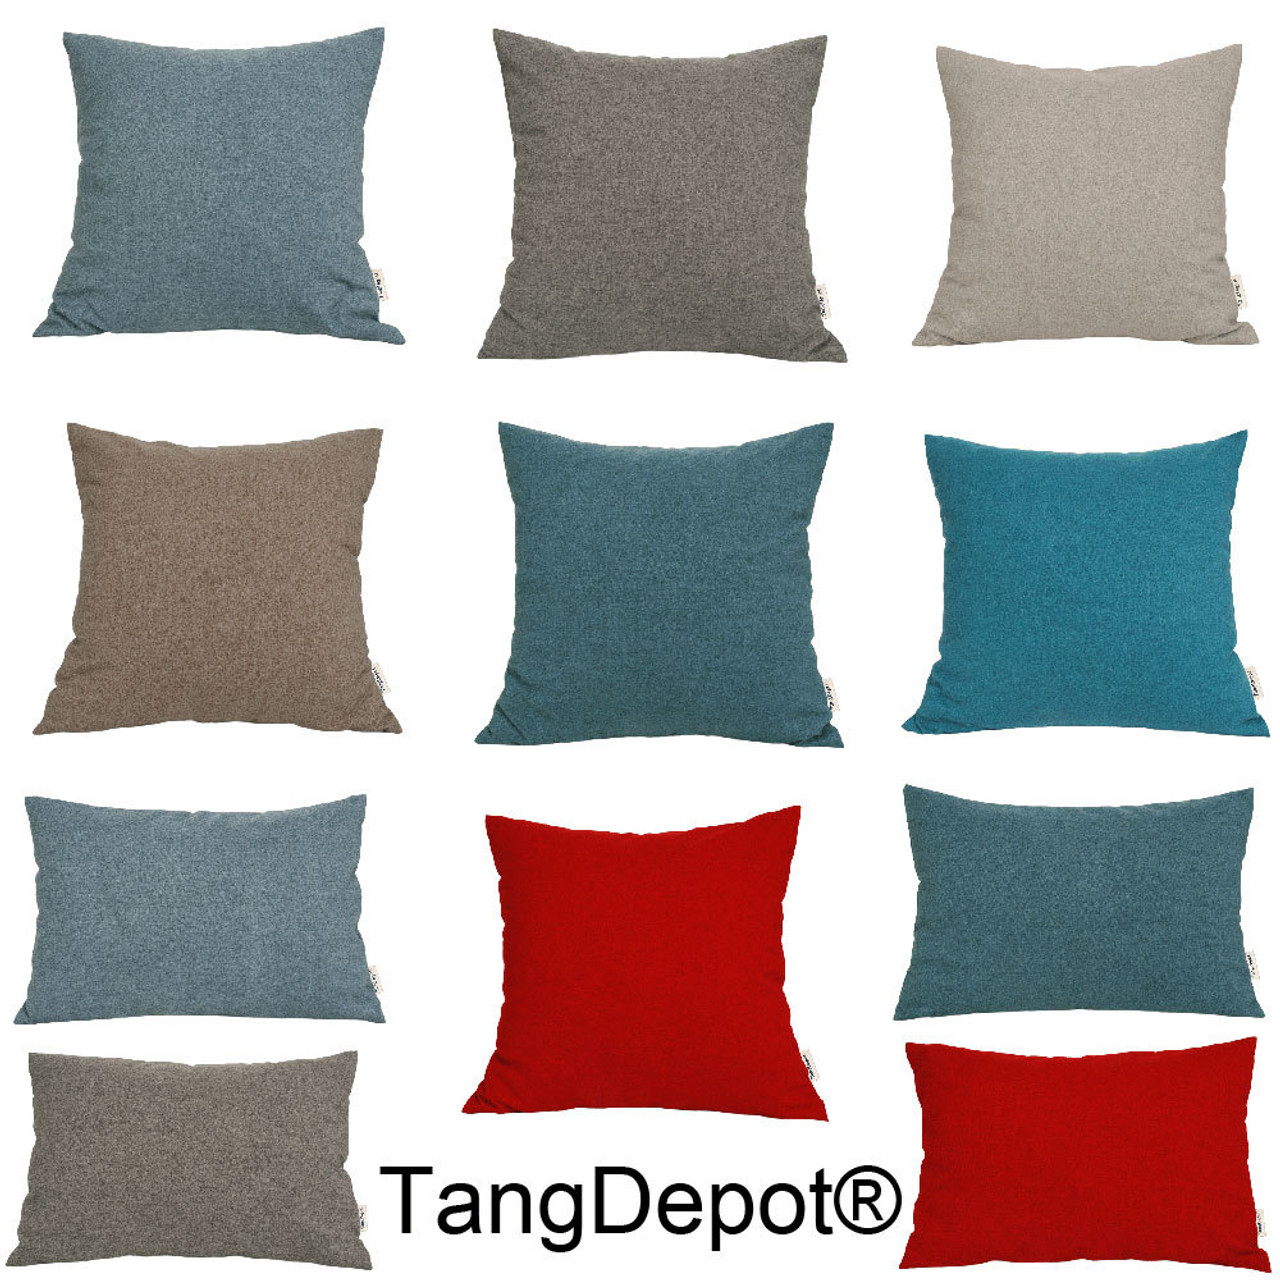 Tangdepot Solid Wool Like Throw Pillow Cover Euro Sham Cushion Sham Super Luxury Soft Pillow Cases Handmade Many Colors Sizes Avaliable Tangdepot